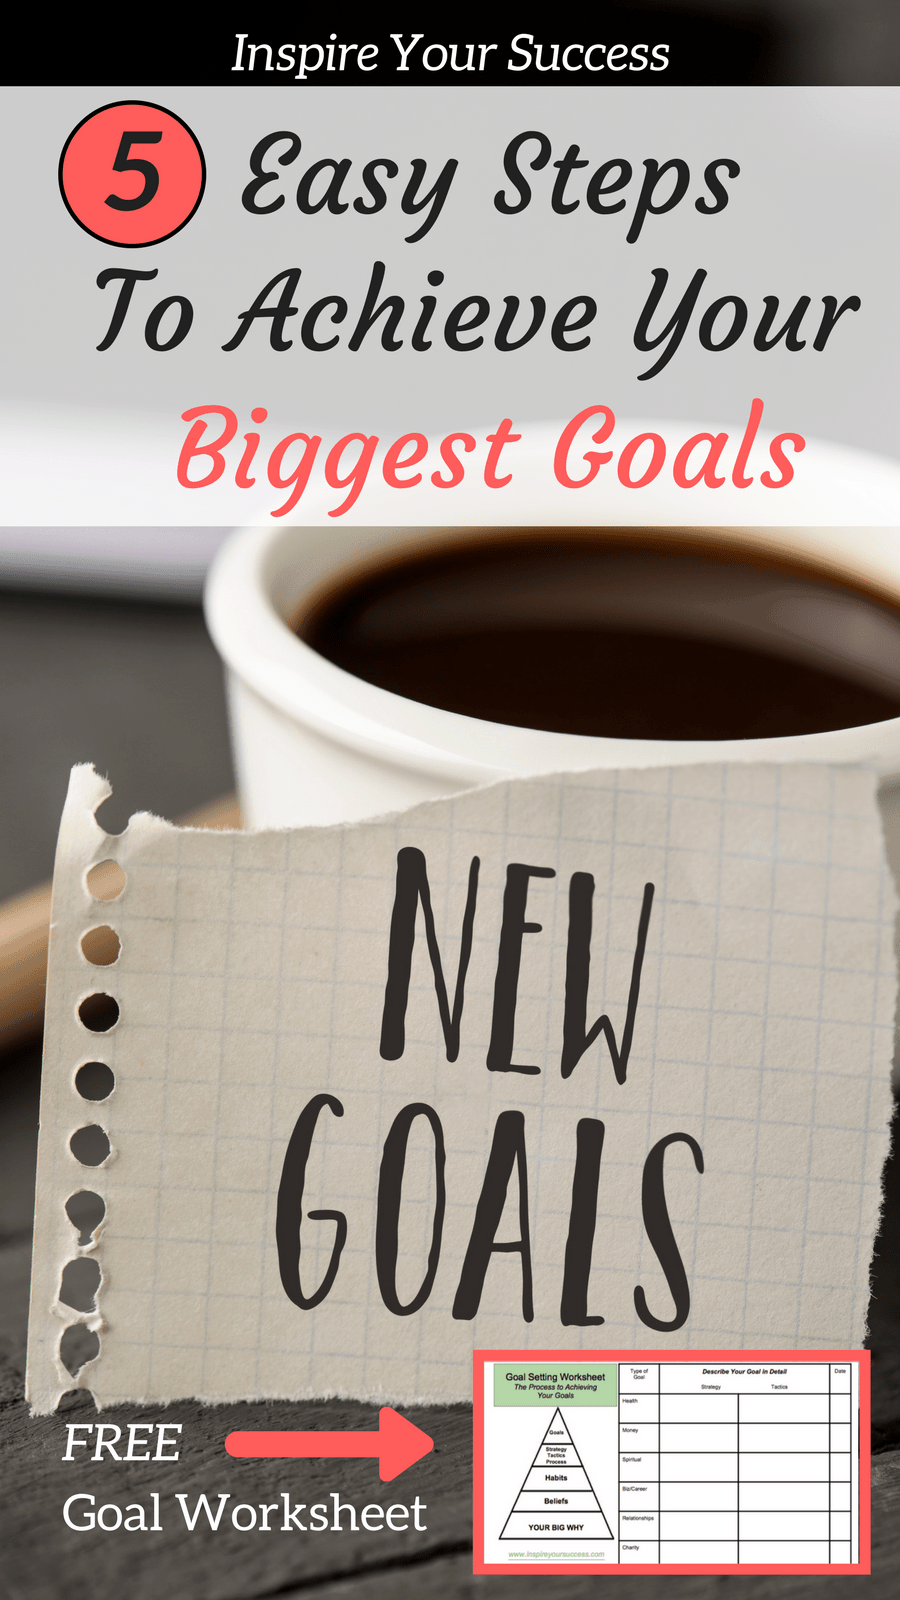 This FREE goal setting worksheet printable has helped me so much! I feel like I can accomplish my fitness goals, personal goals, business goals easily!